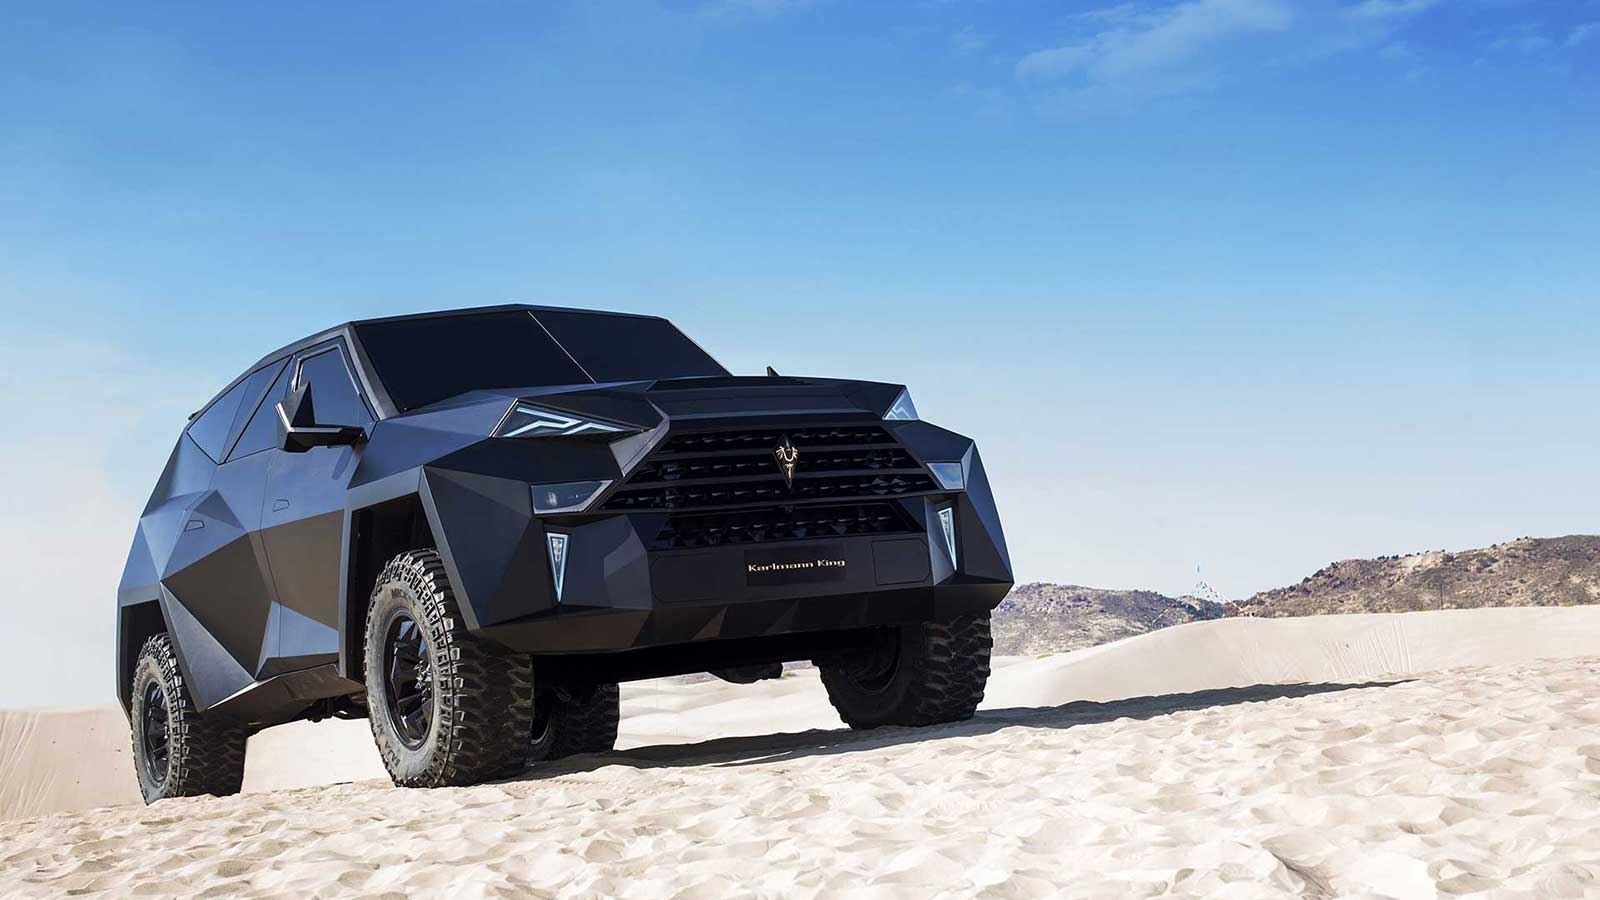 Karlmann King Ground Stealth Fighter Armored Vehicle